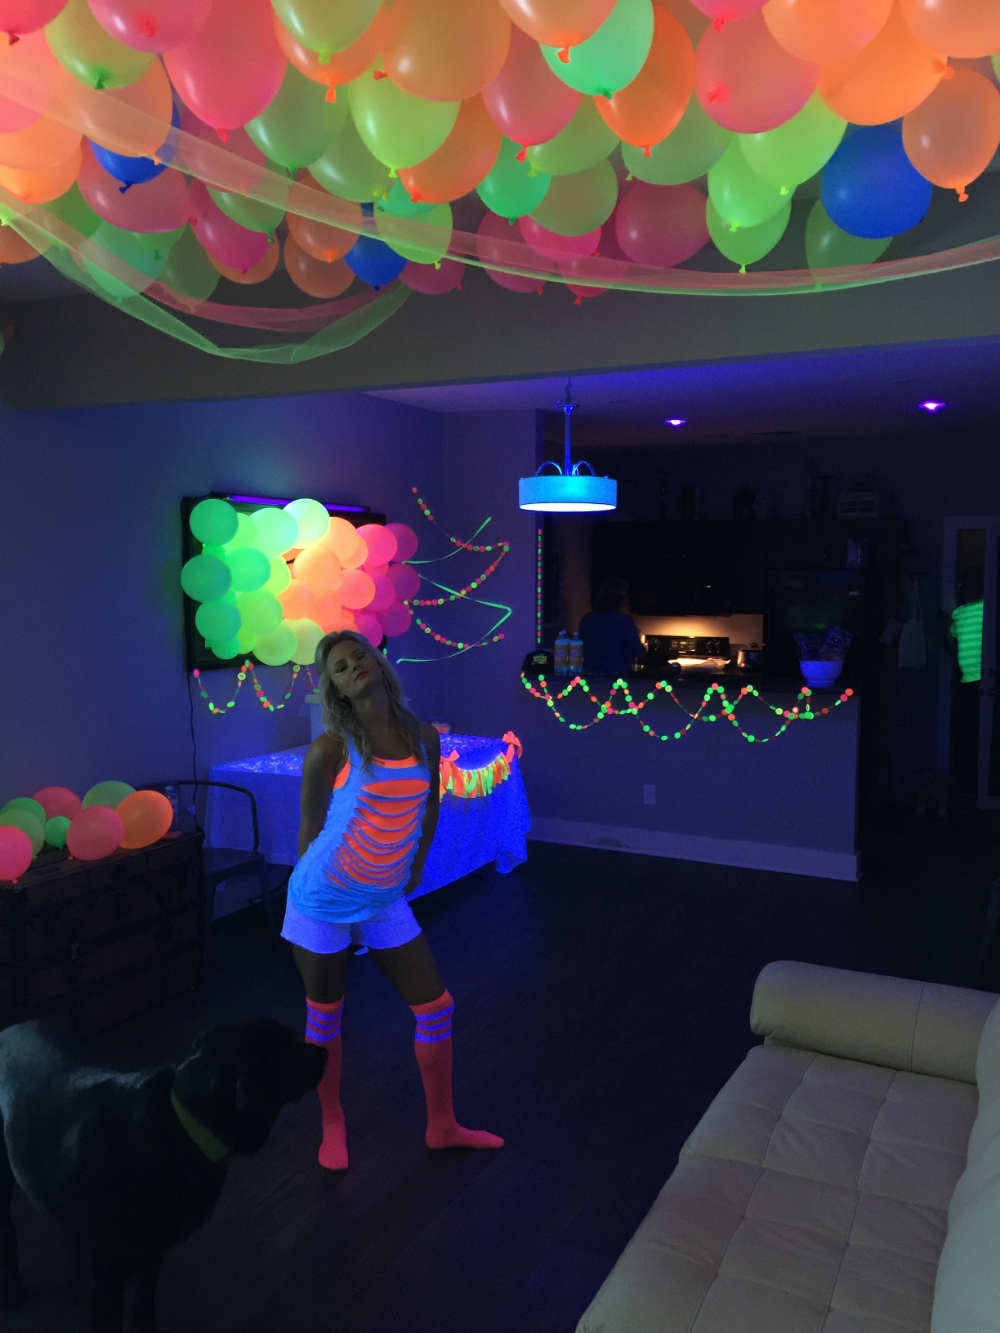 Fallon, the hostest with the mostest, and her house-turned-blacklight-party deckout...